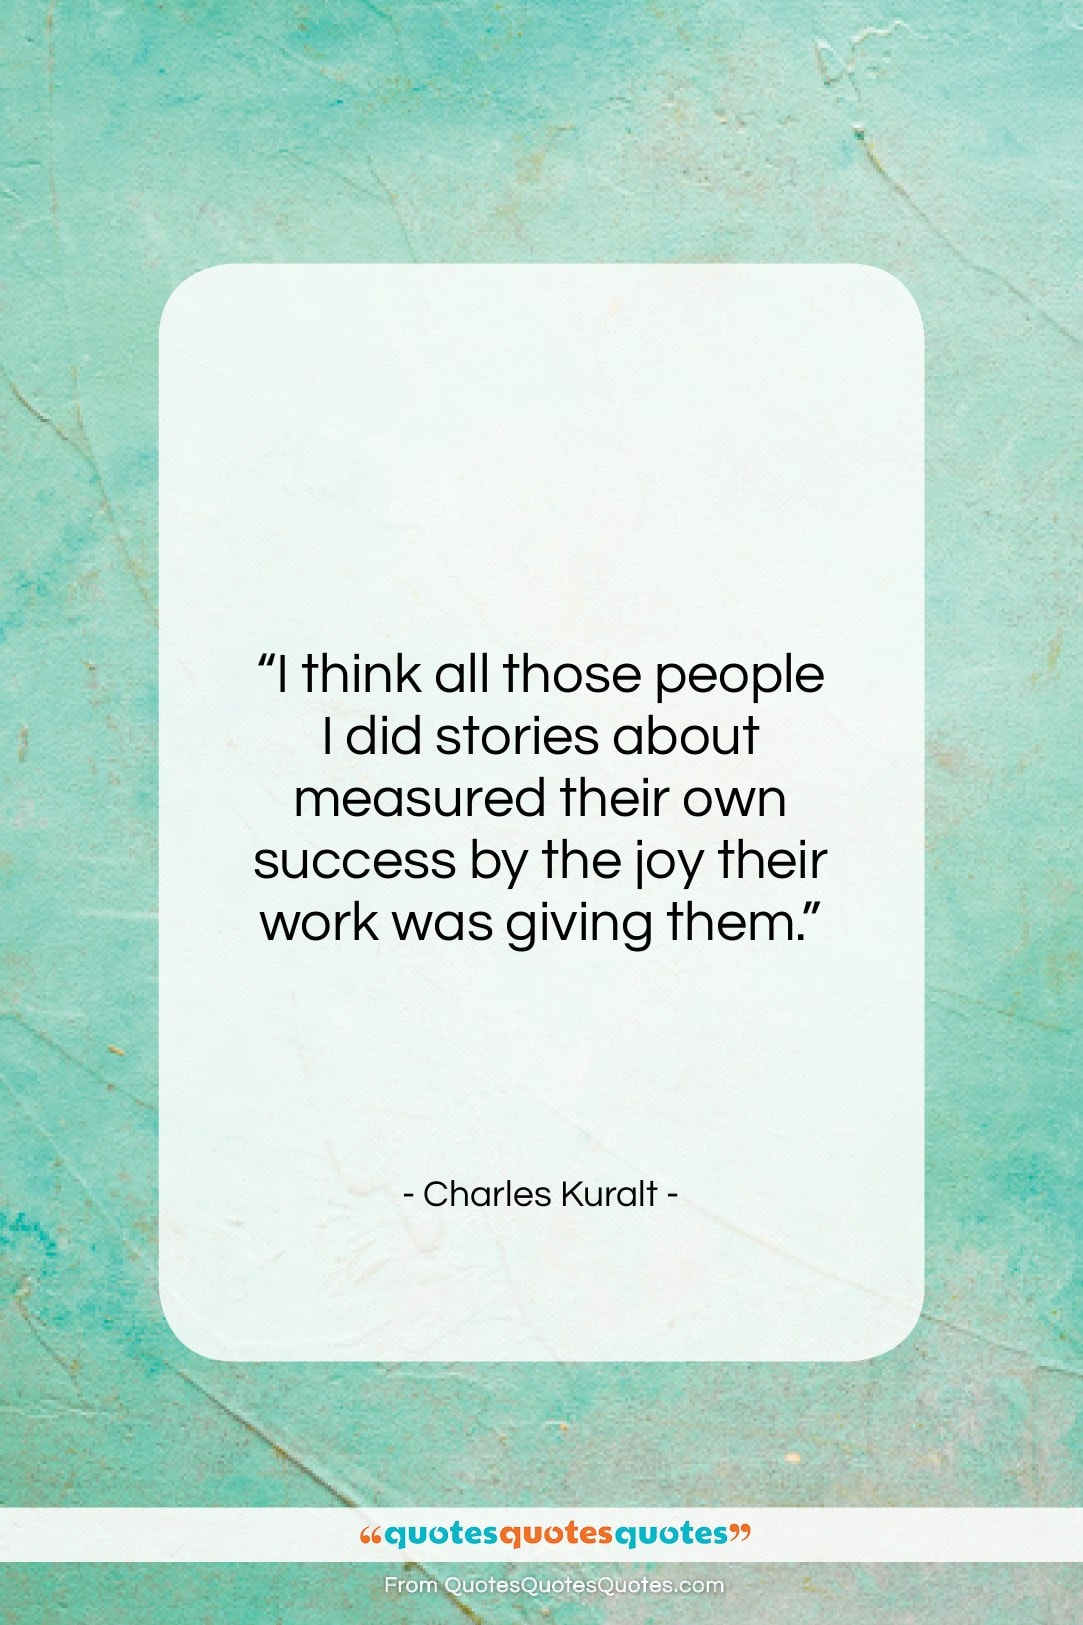 """Charles Kuralt quote: """"I think all those people I did…""""- at QuotesQuotesQuotes.com"""